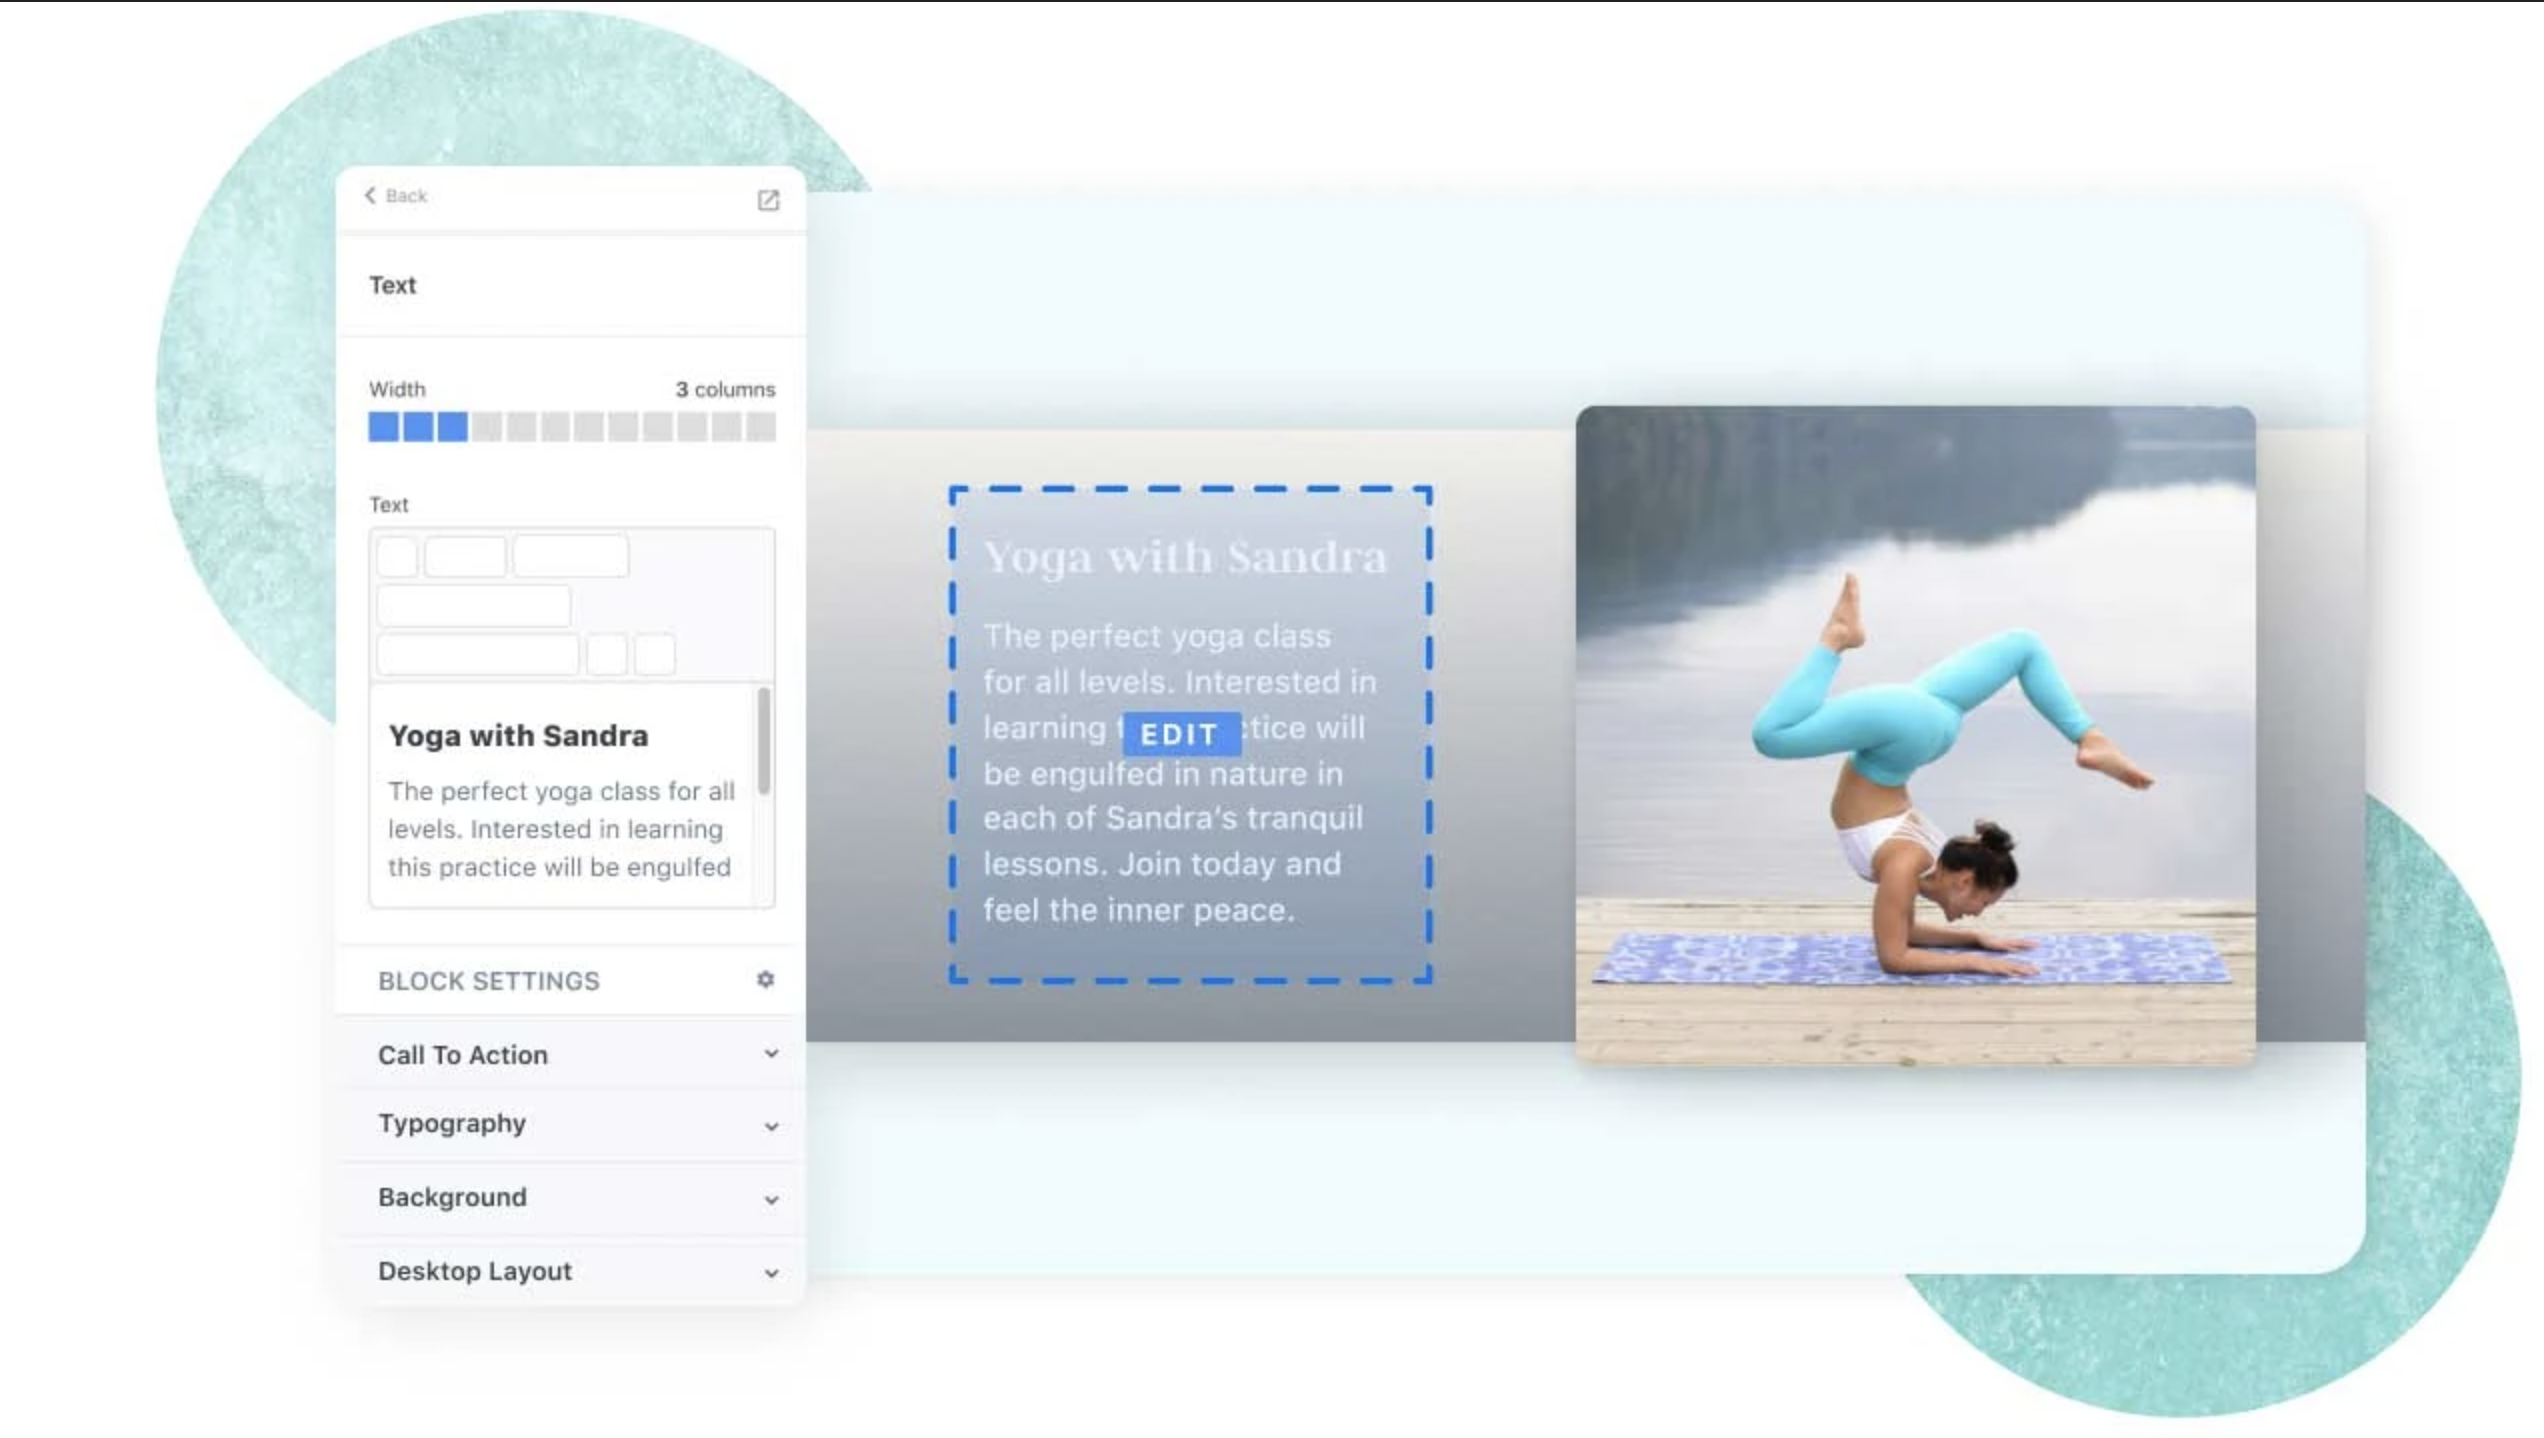 5 email marketing tips to grow your online fitness business